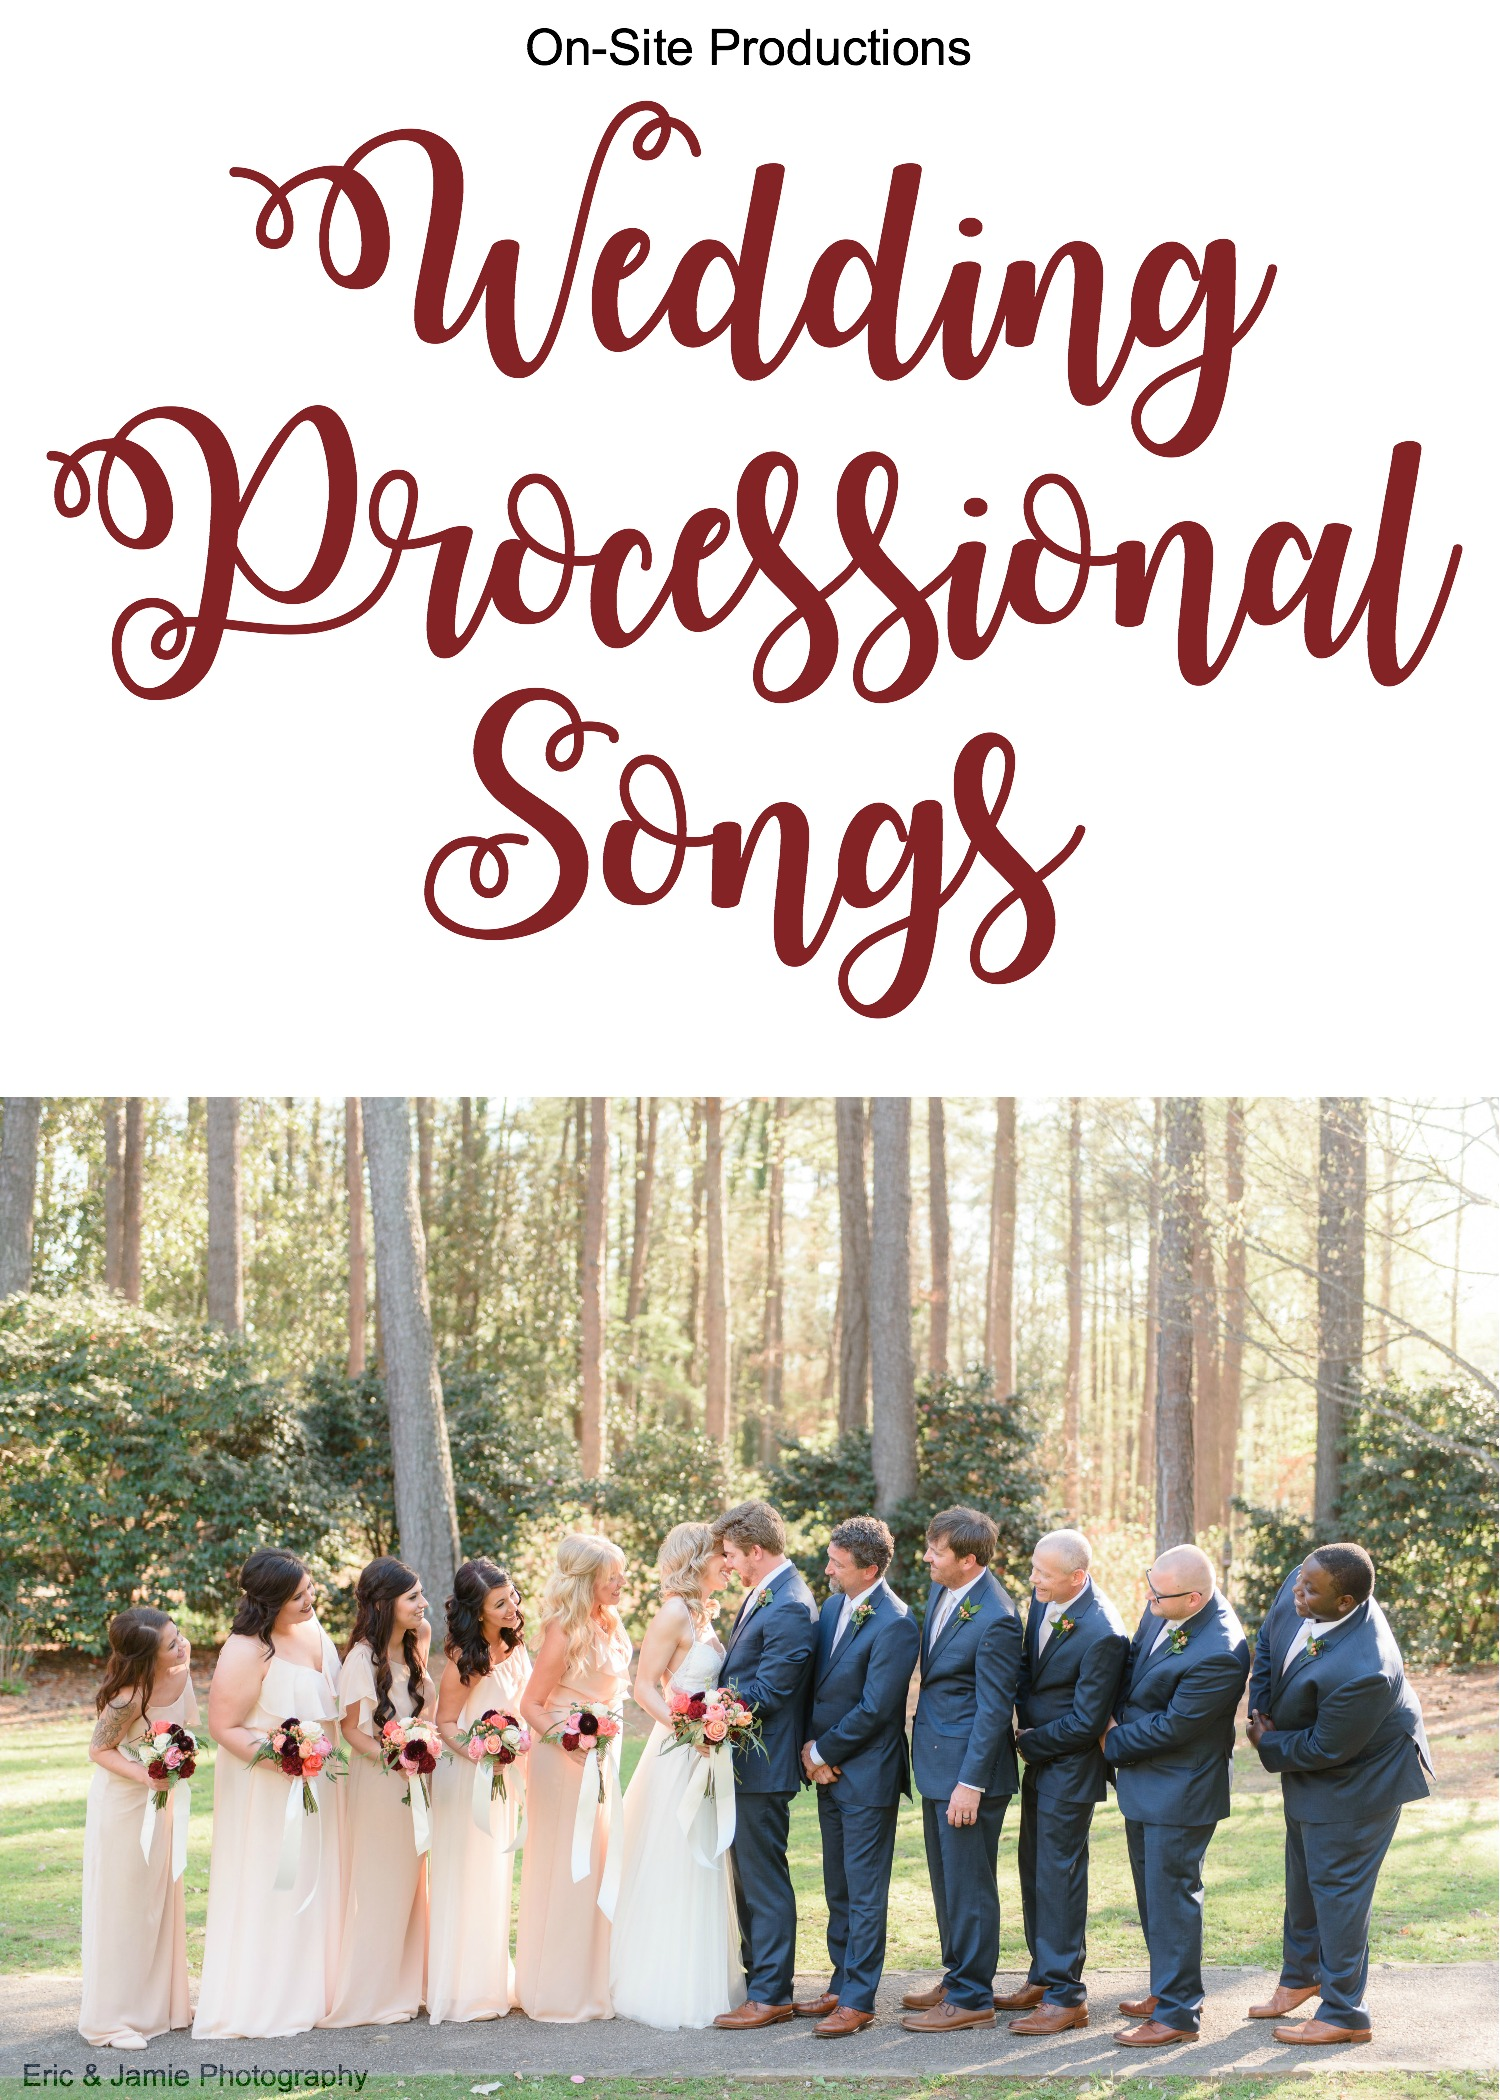 Wedding Processional Songs.Wedding Processional Songs A Playlist Wedding Dj Wedding Lights